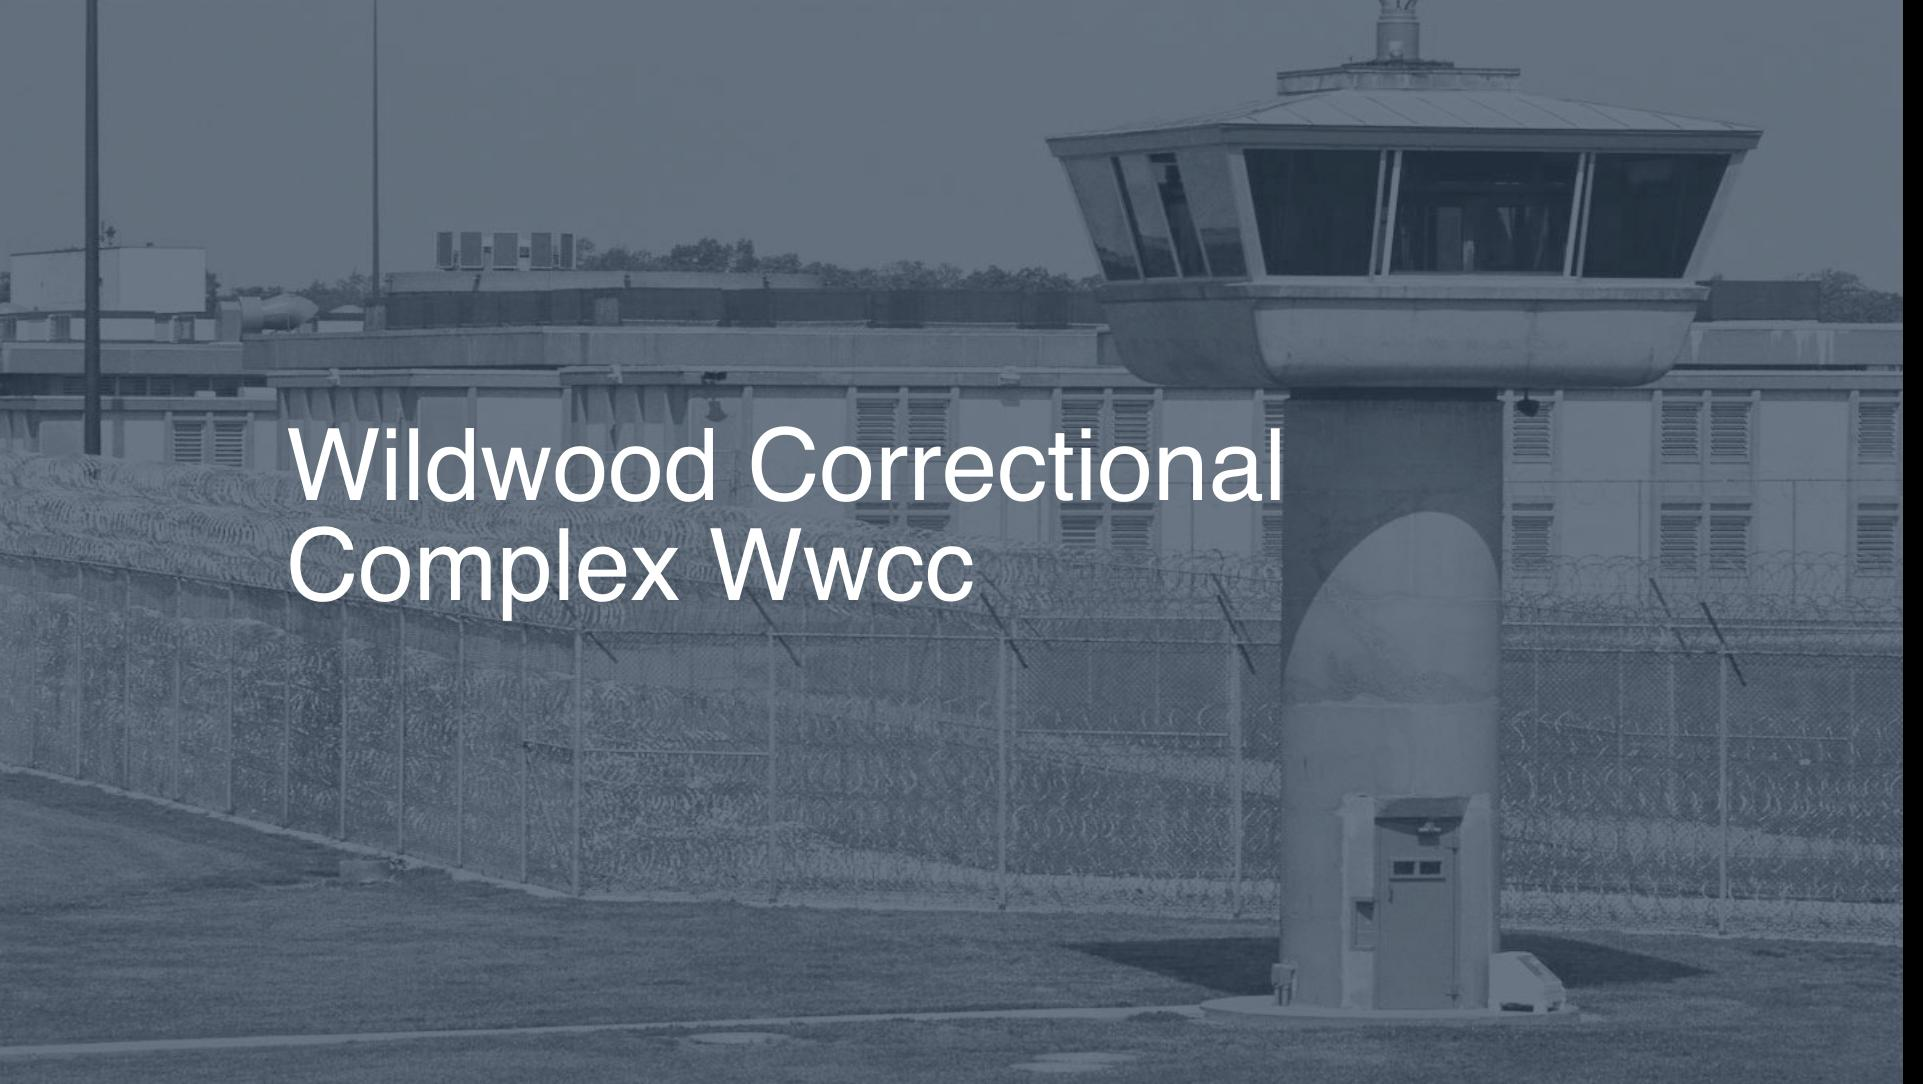 Wildwood Correctional Complex (WWCC) correctional facility picture